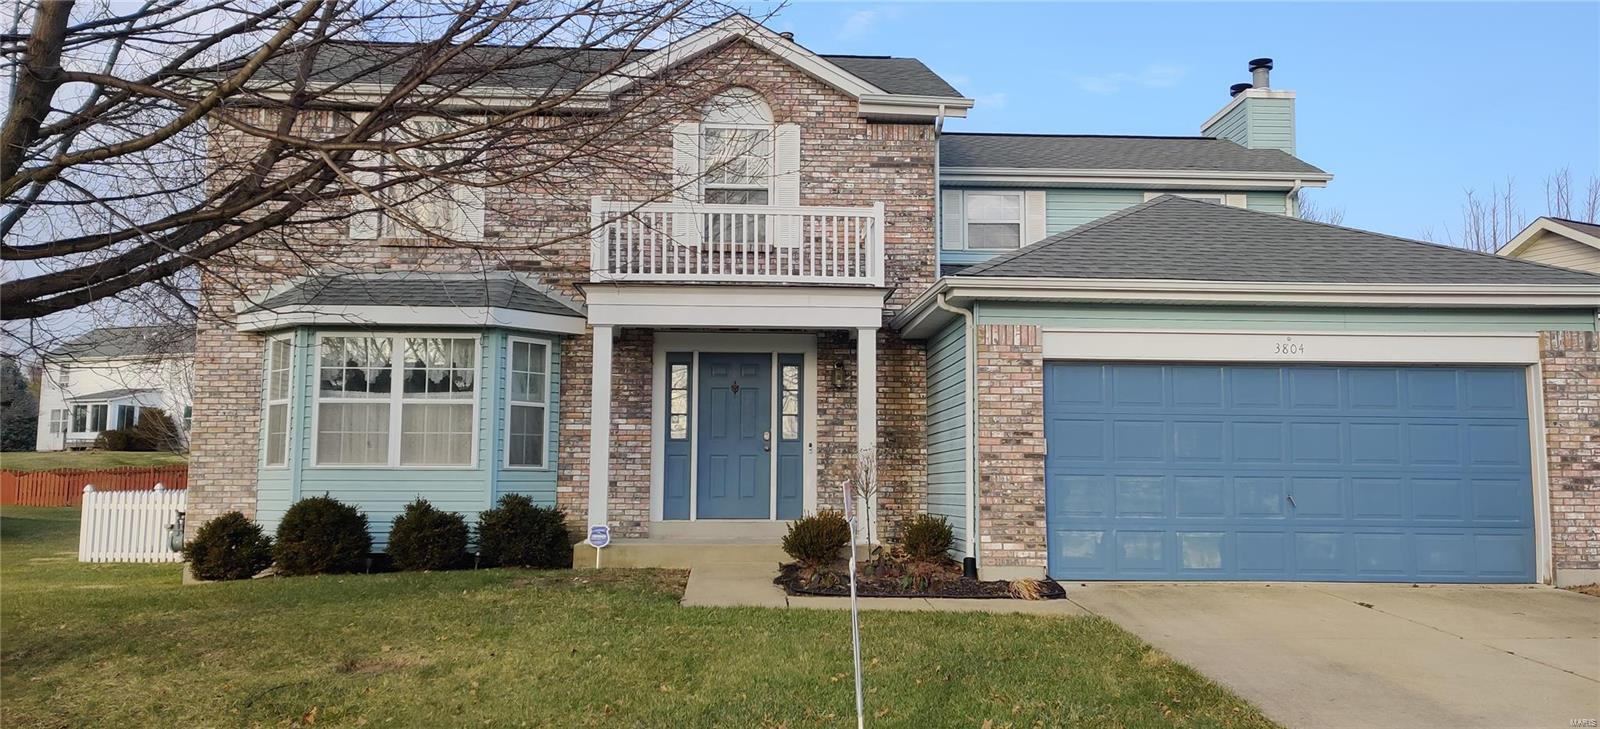 3804 Affirmed Drive Property Photo - Florissant, MO real estate listing